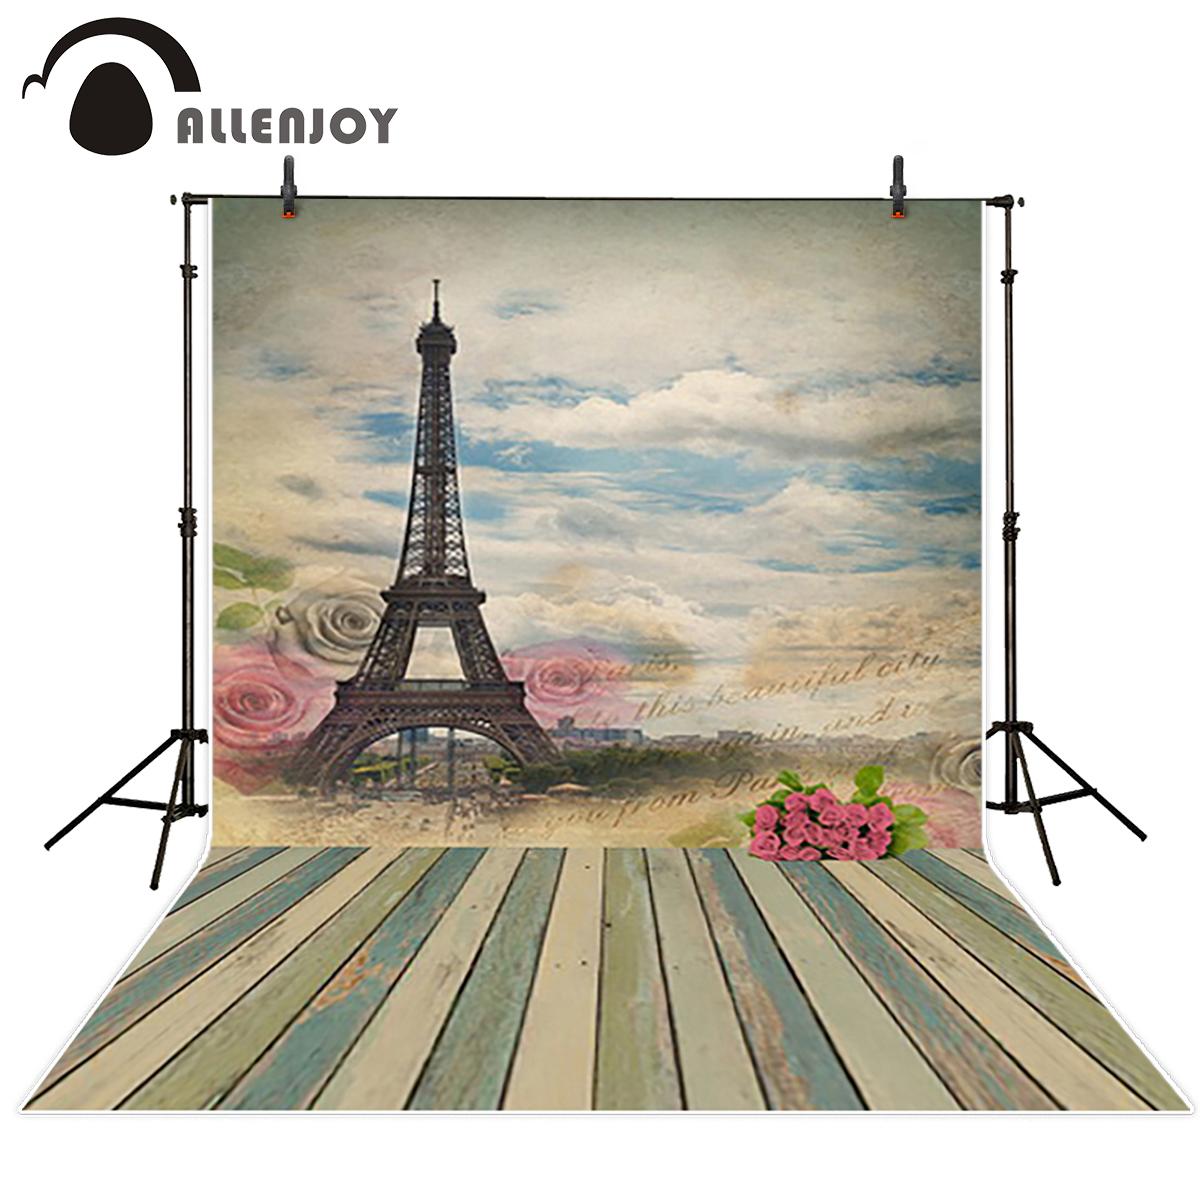 Allenjoy studio Photo background Romantic love Eiffel tower wedding photocall photography backdrops vinyl excluding stand